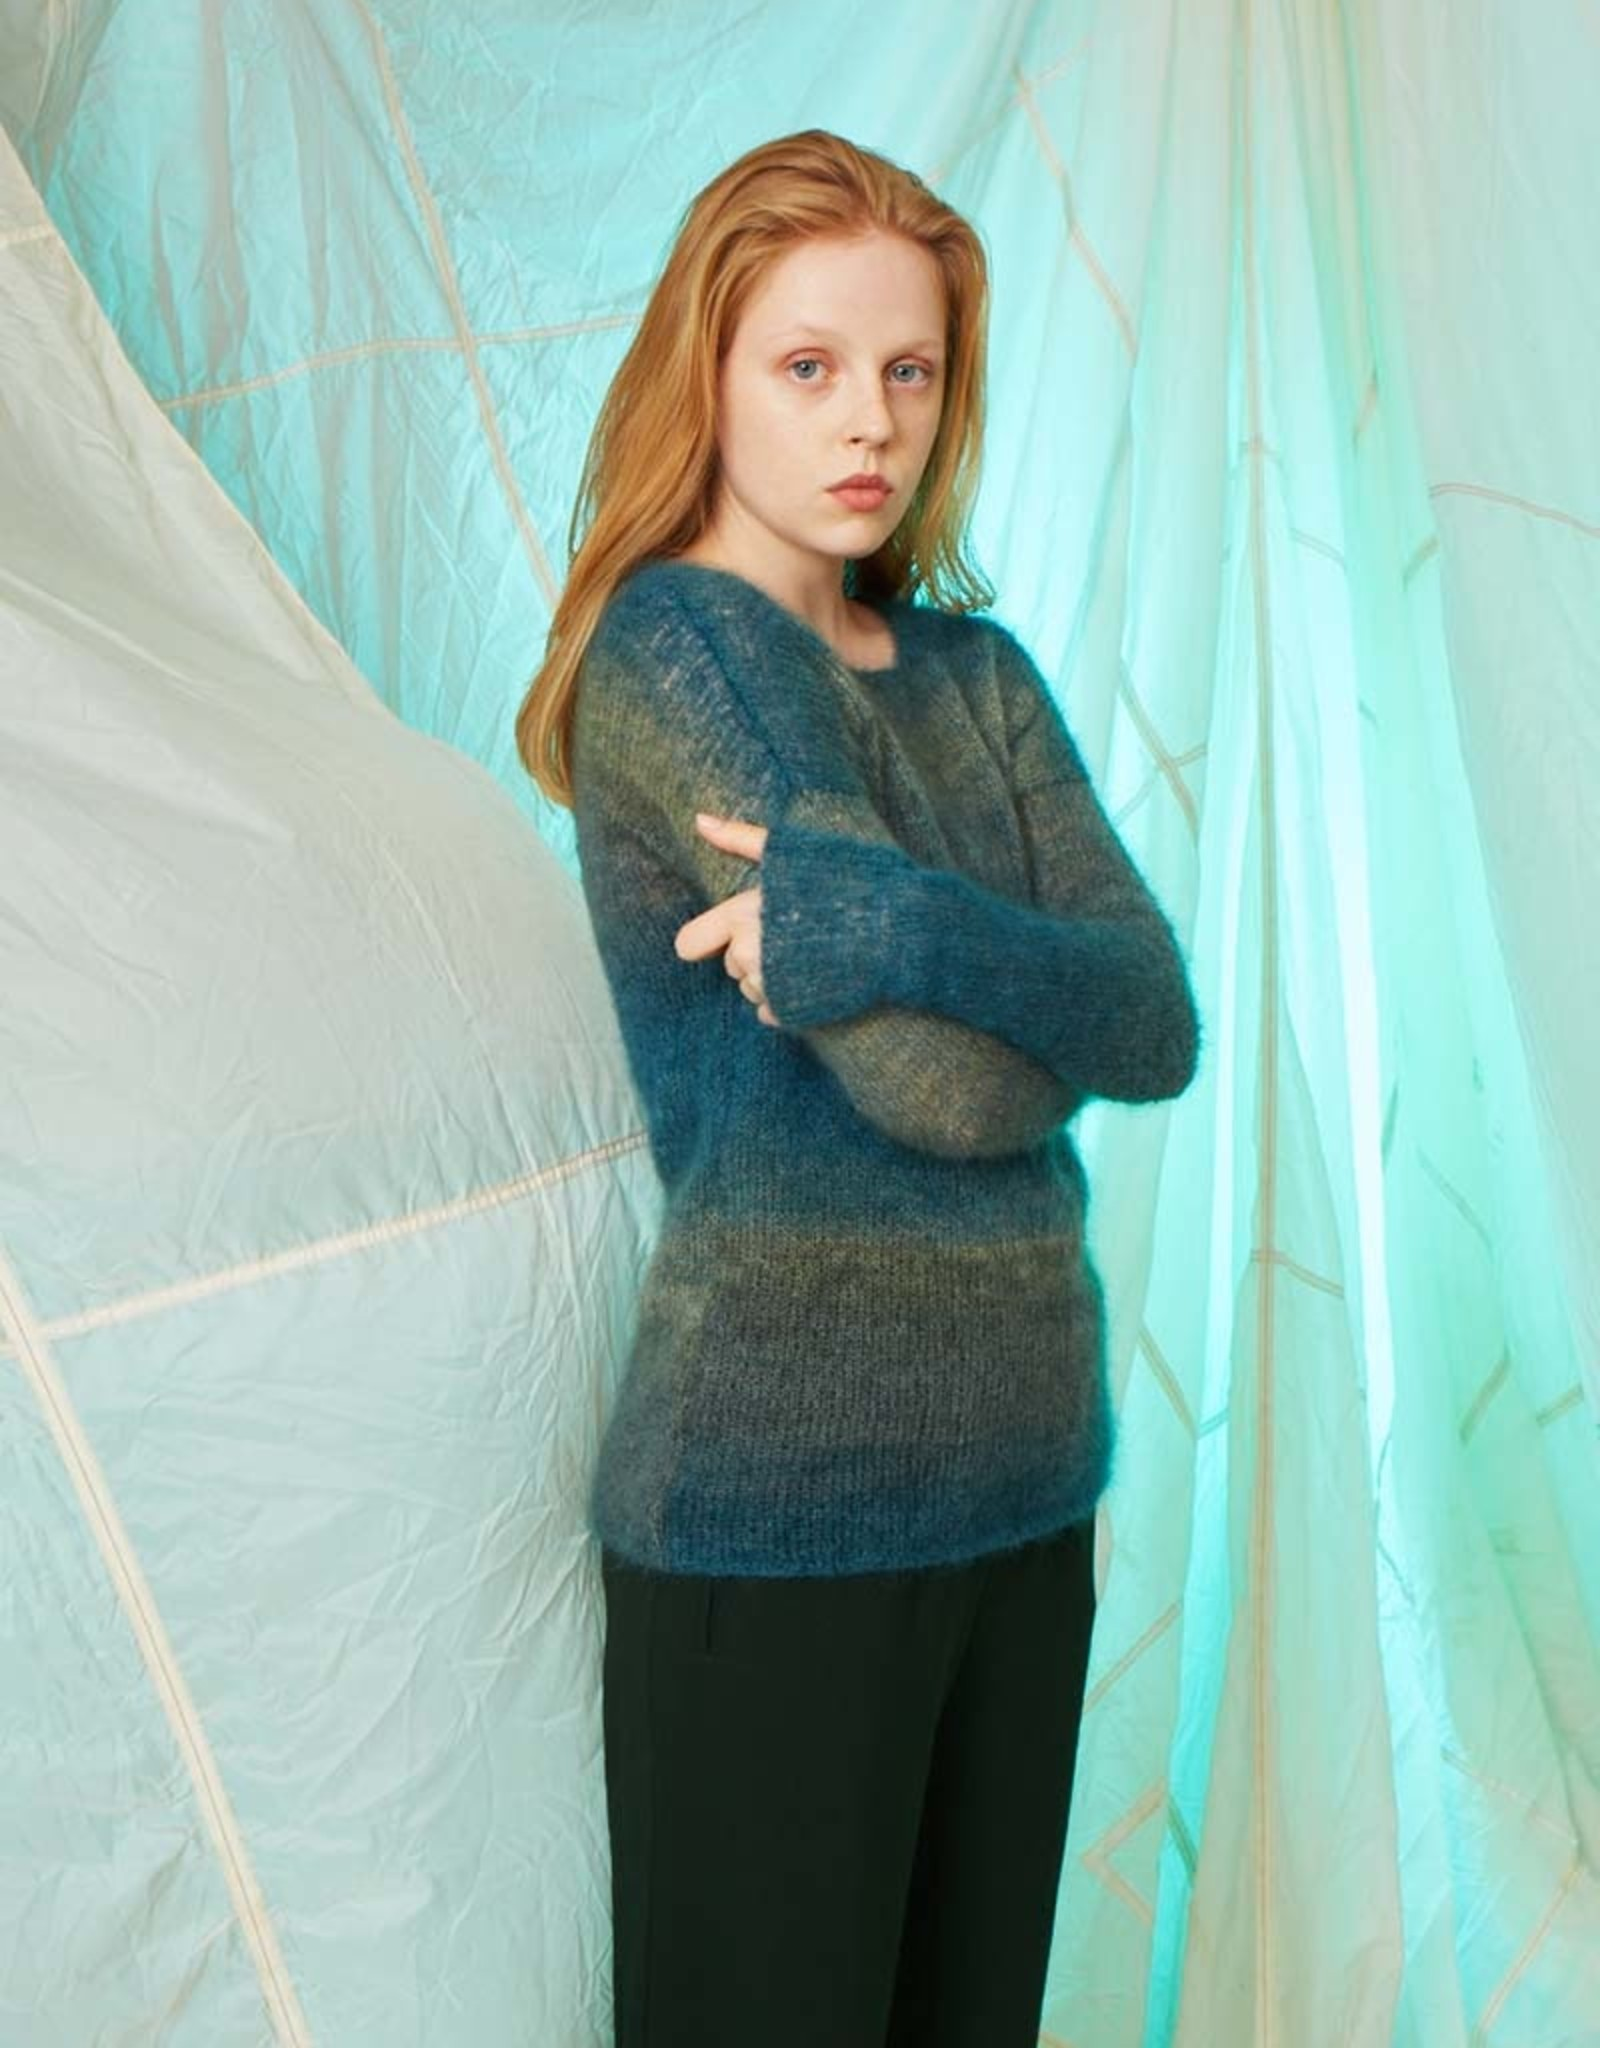 Angels-Knit by FDF 100% handmade Breipakket Trui Mohair Luxe Color S/M